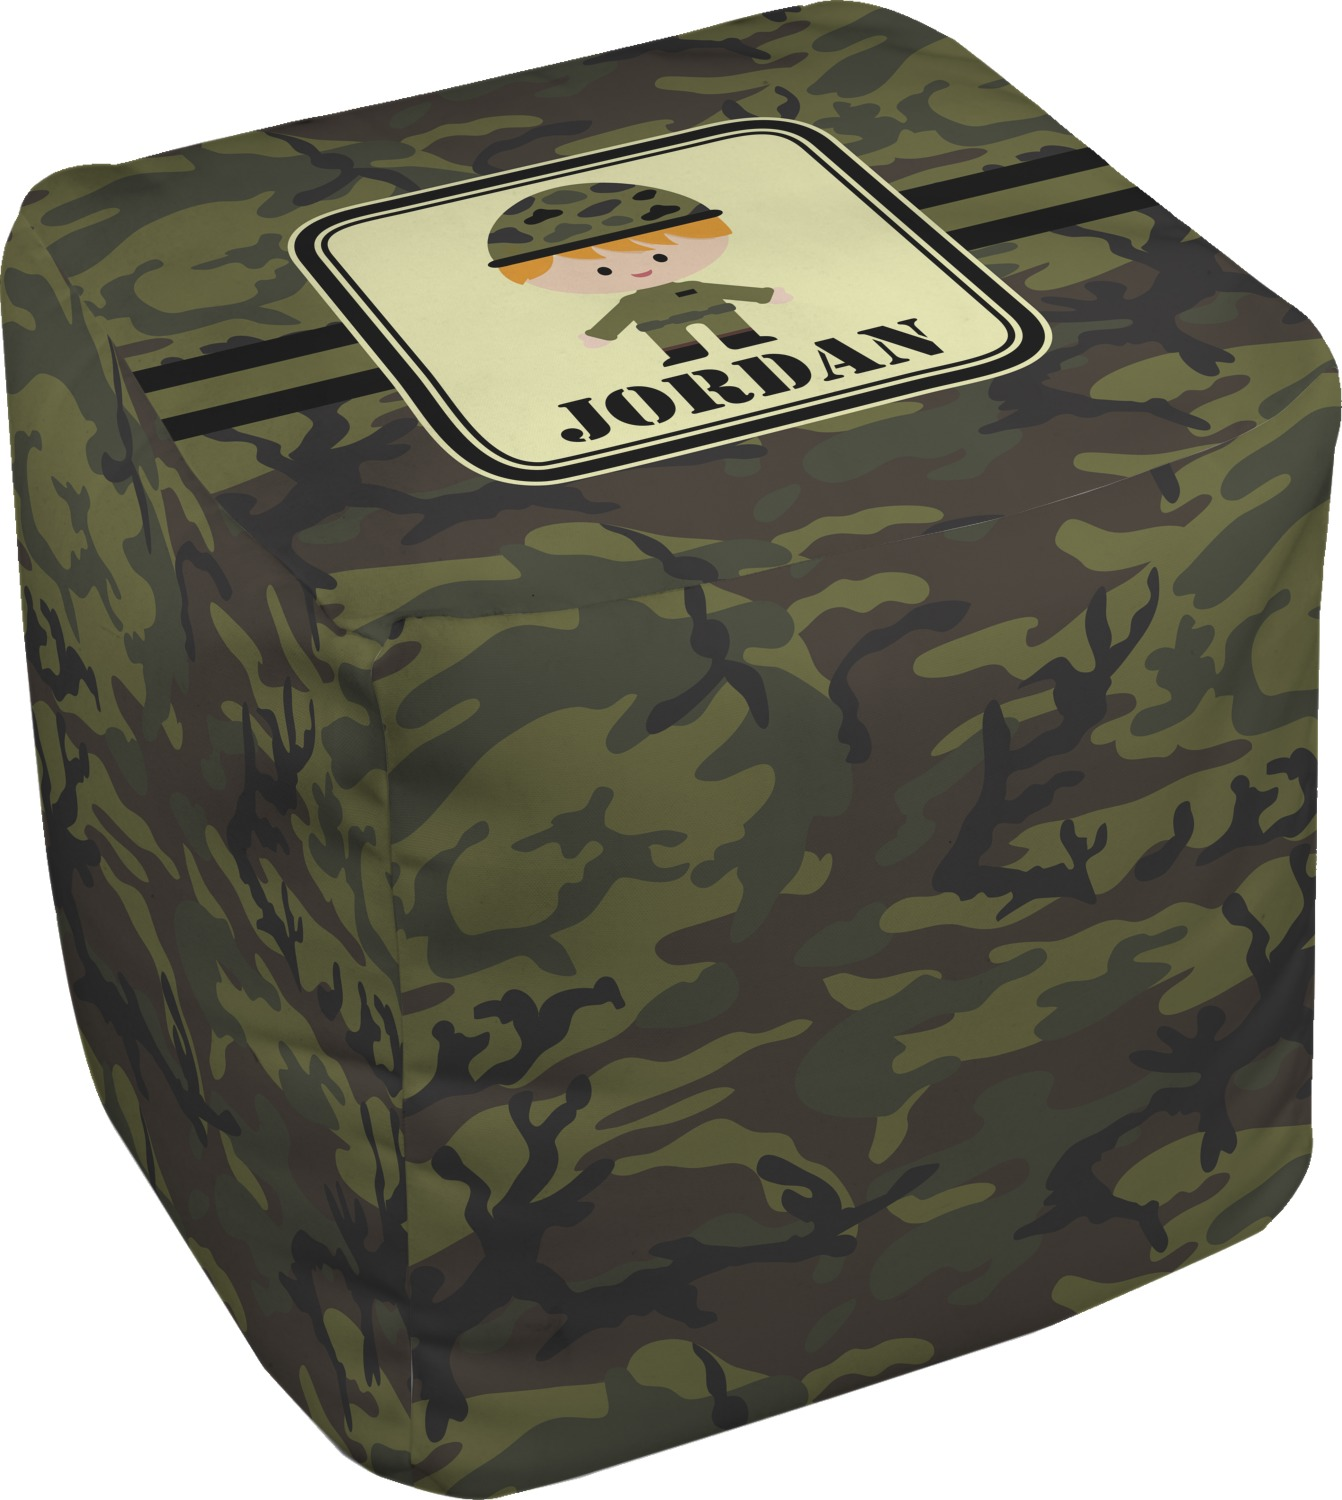 green camo cube pouf ottoman 13 personalized rnk shops. Black Bedroom Furniture Sets. Home Design Ideas